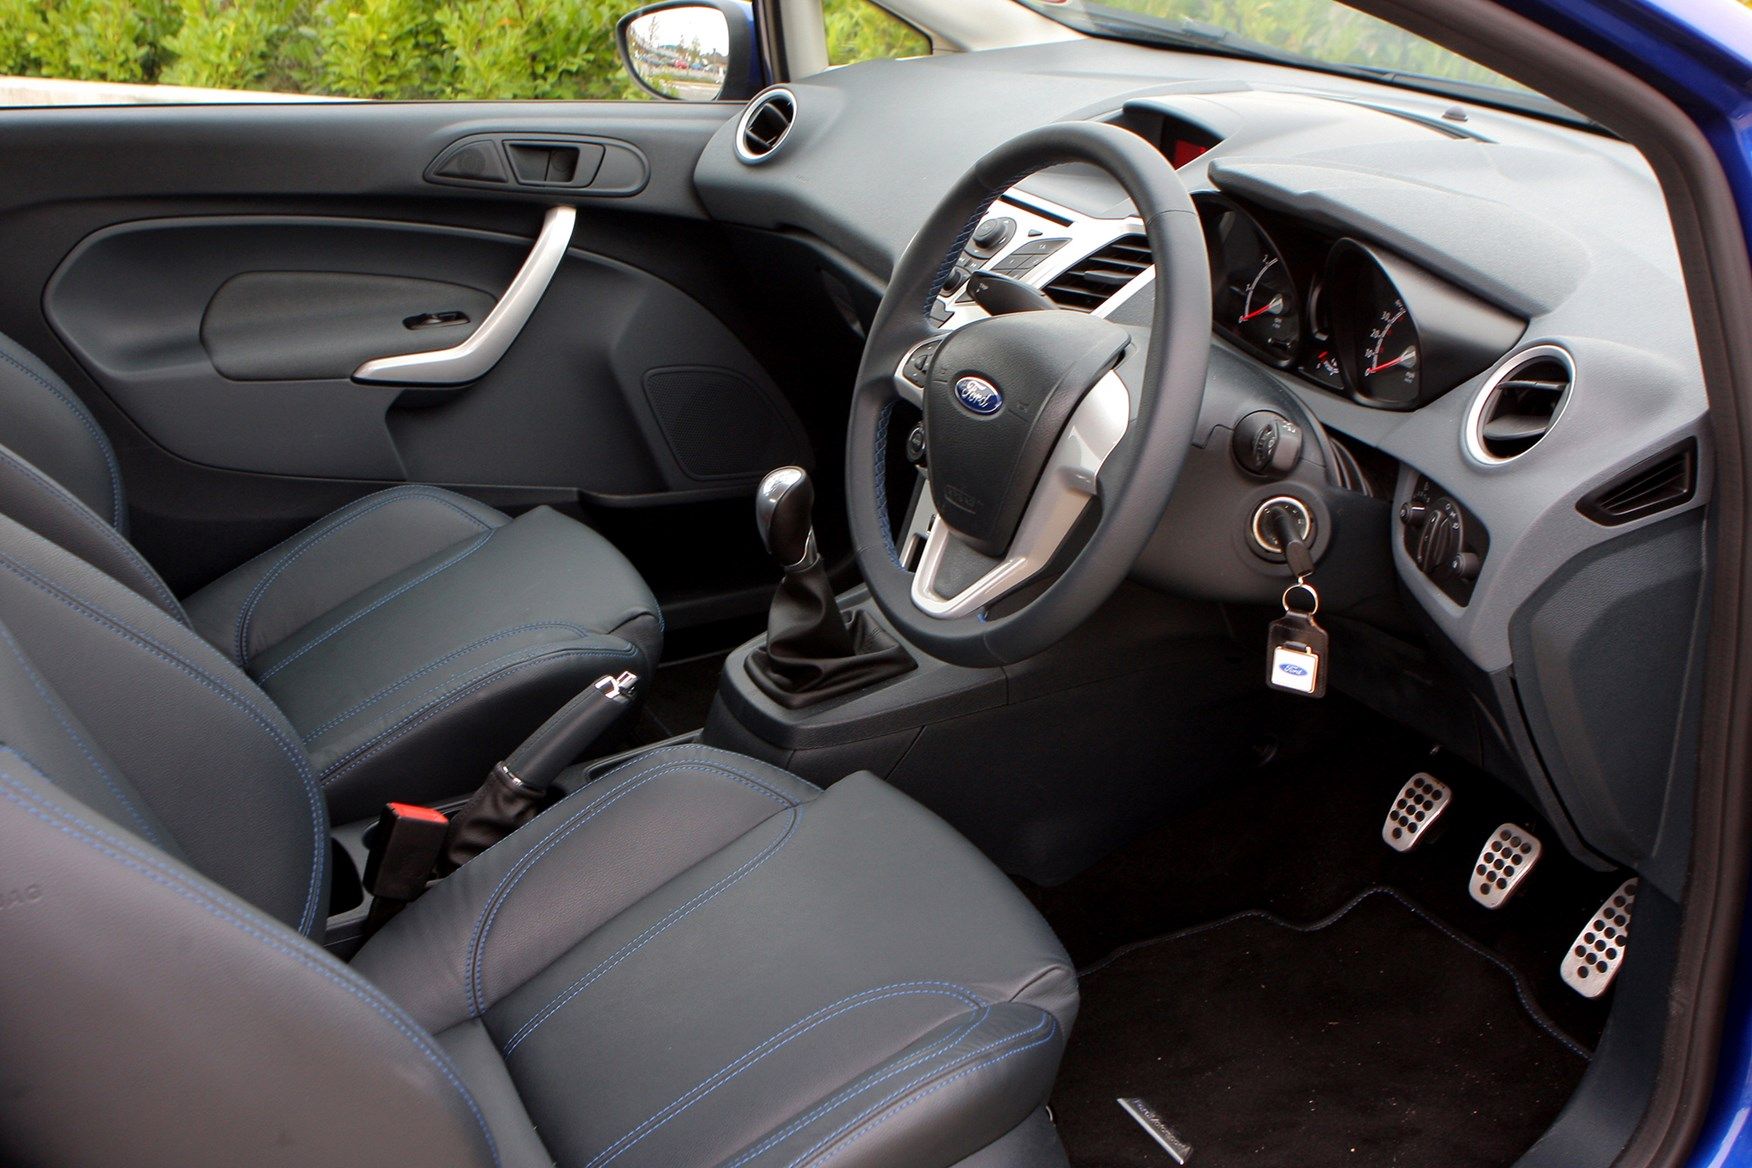 Ford Fiesta Hatchback 2008 Photos Parkers